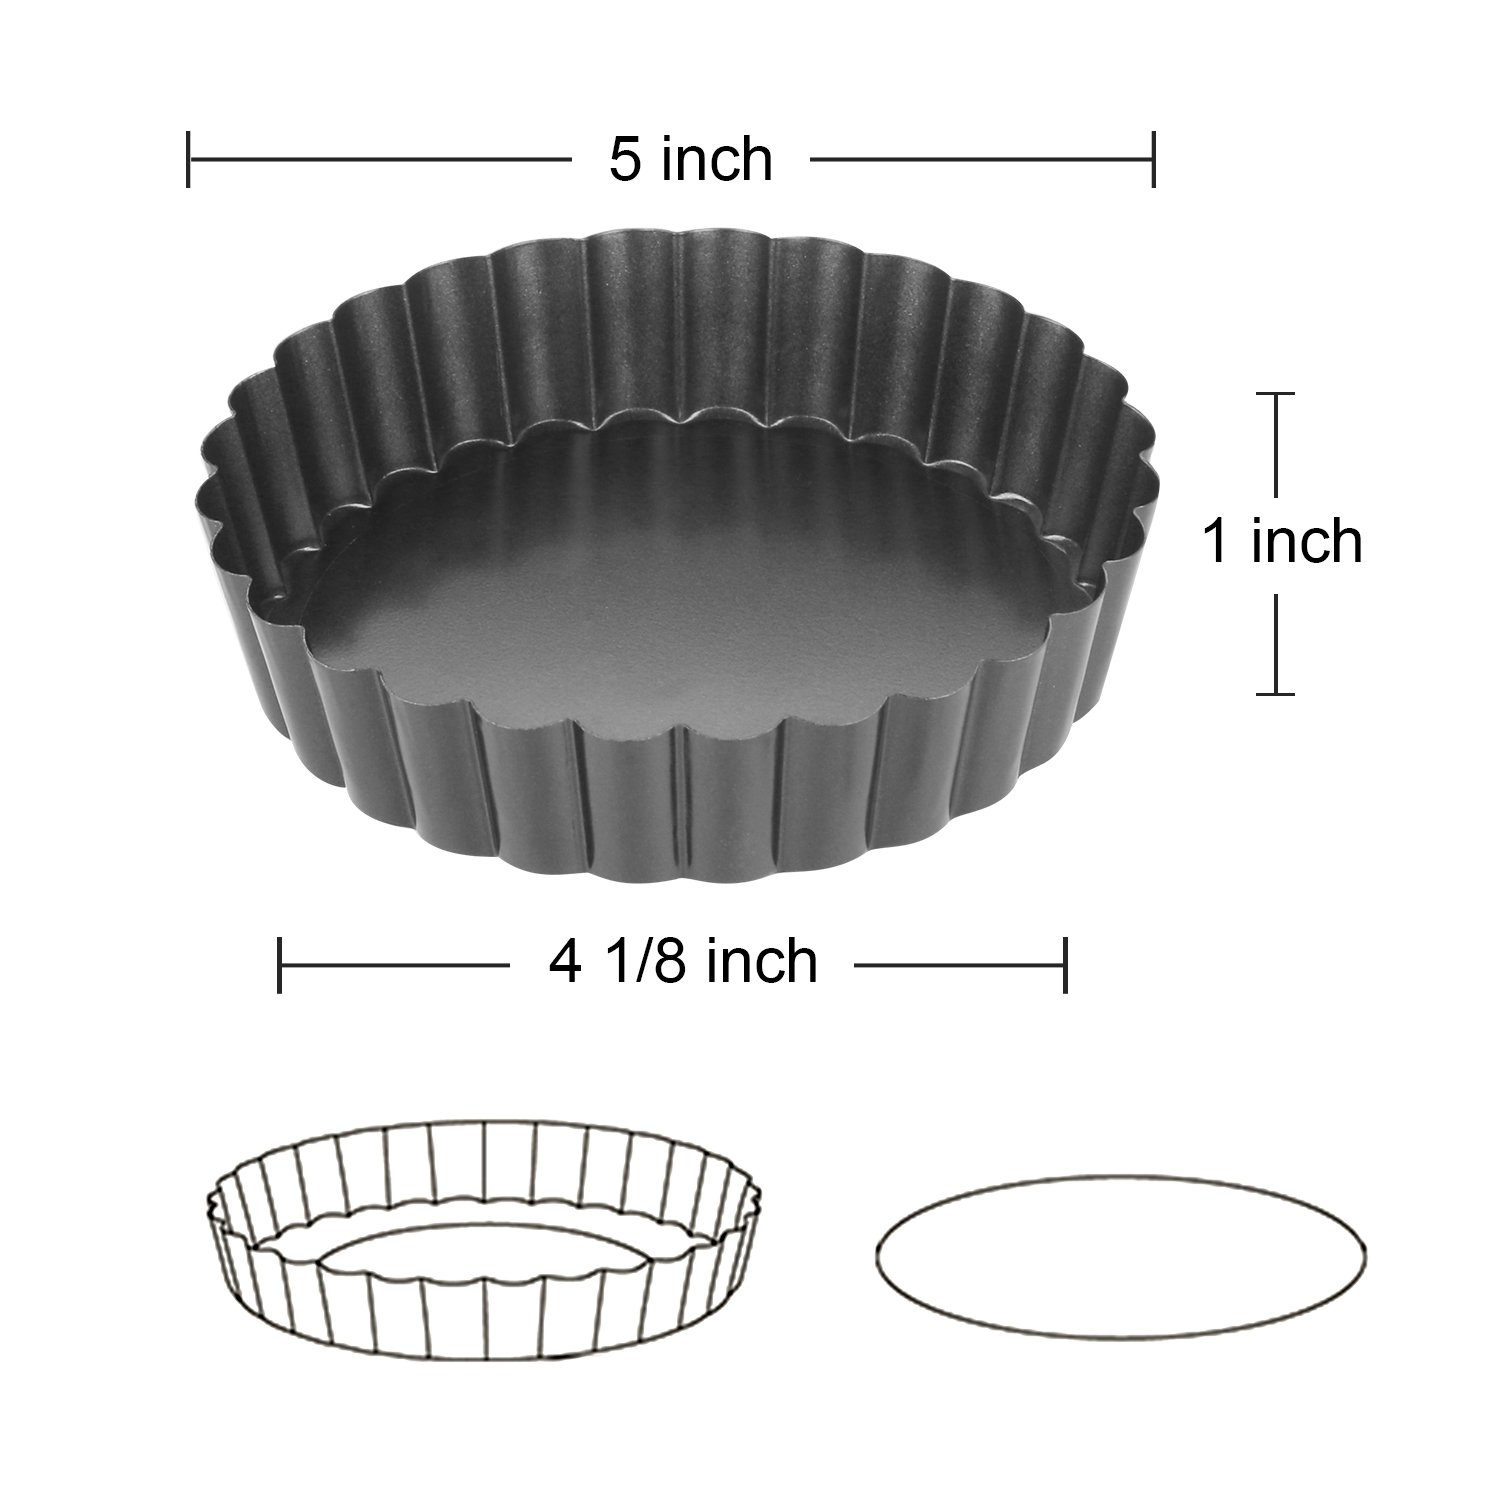 Quiche Pans, Homono Commercial Grade Non Stick Removable Bottom 5 Inch Mini Tart Pans (Pack of 6) by HOMONO (Image #3)